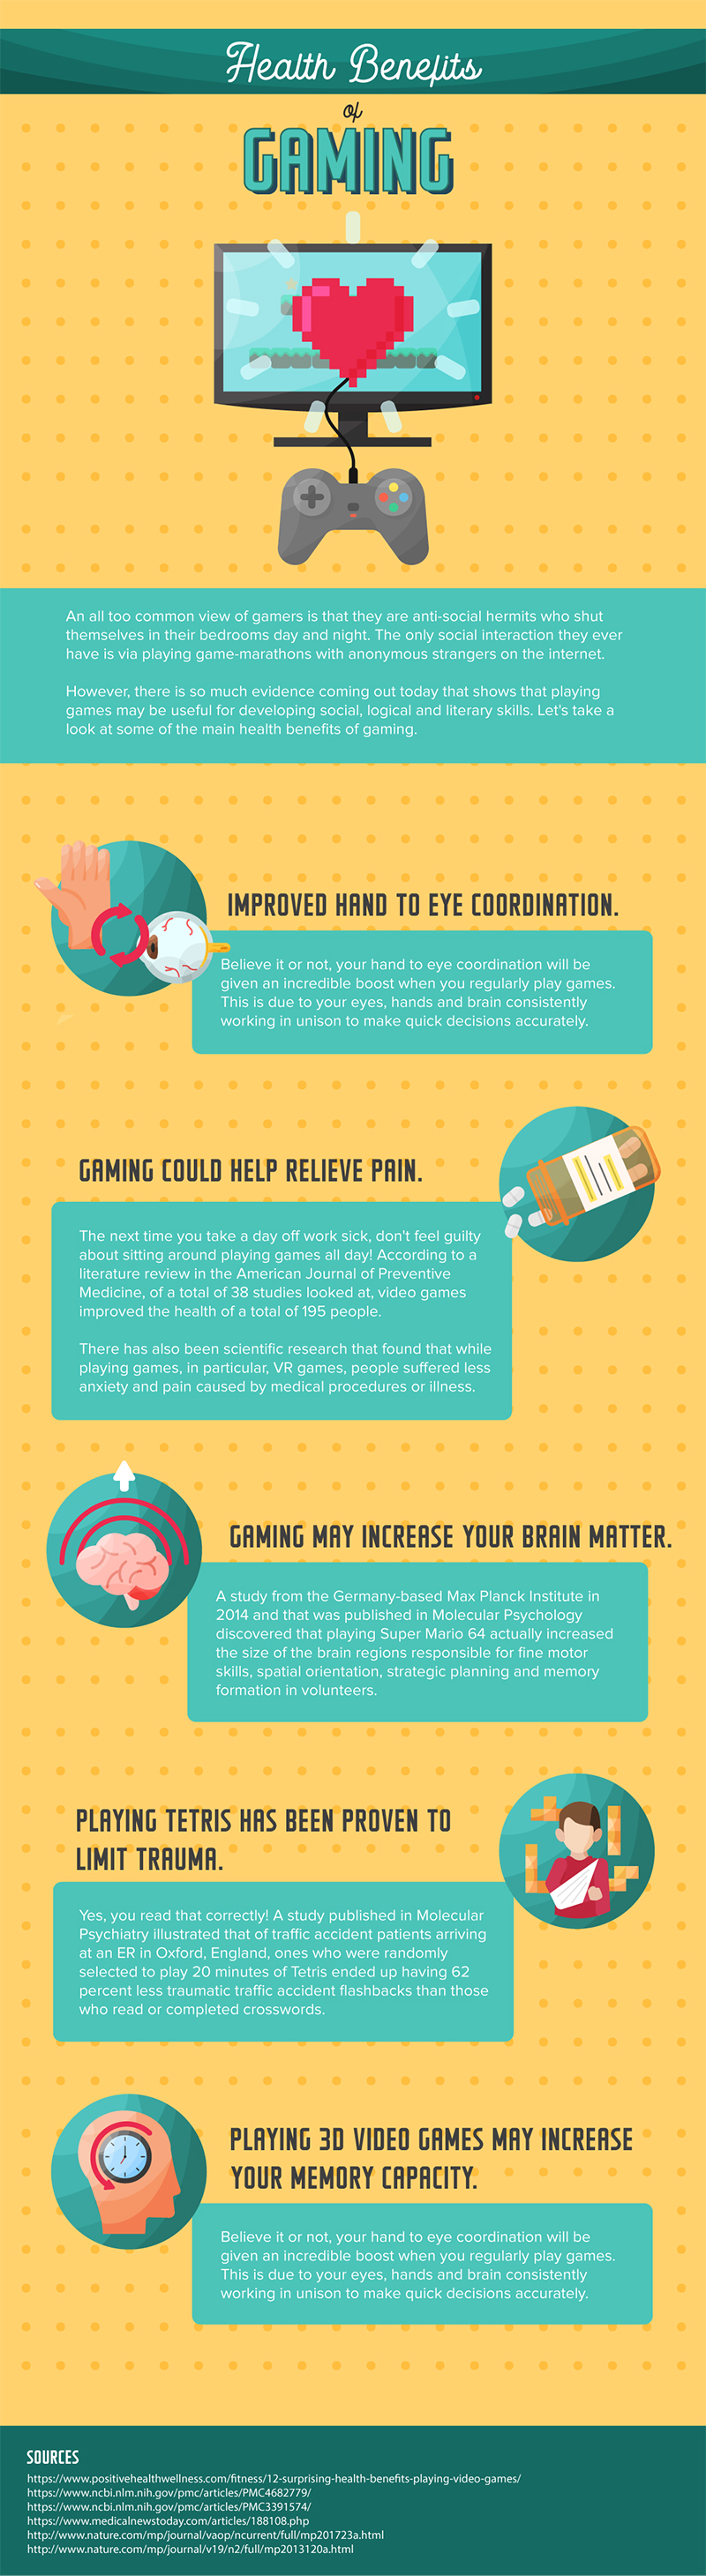 Health benefits of gaming